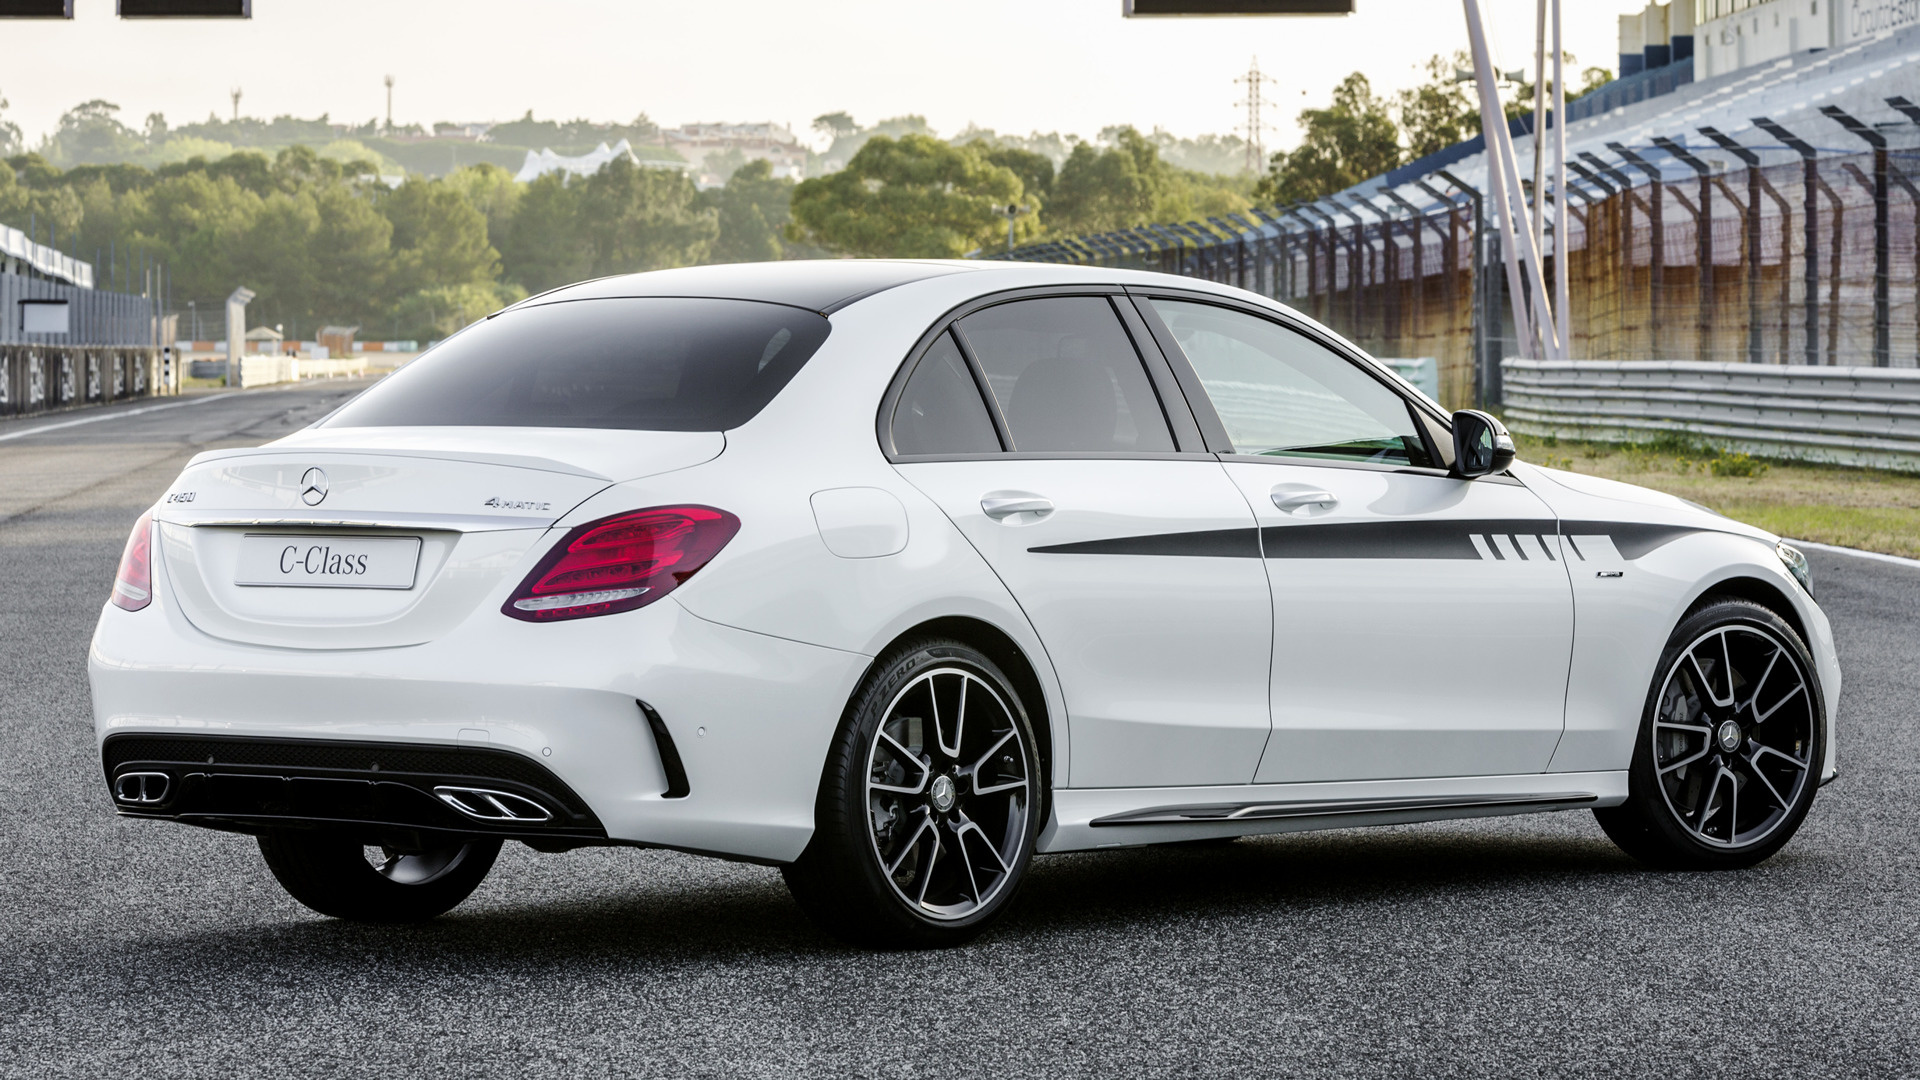 mercedes benz c 450 amg with amg accessories 2015. Black Bedroom Furniture Sets. Home Design Ideas